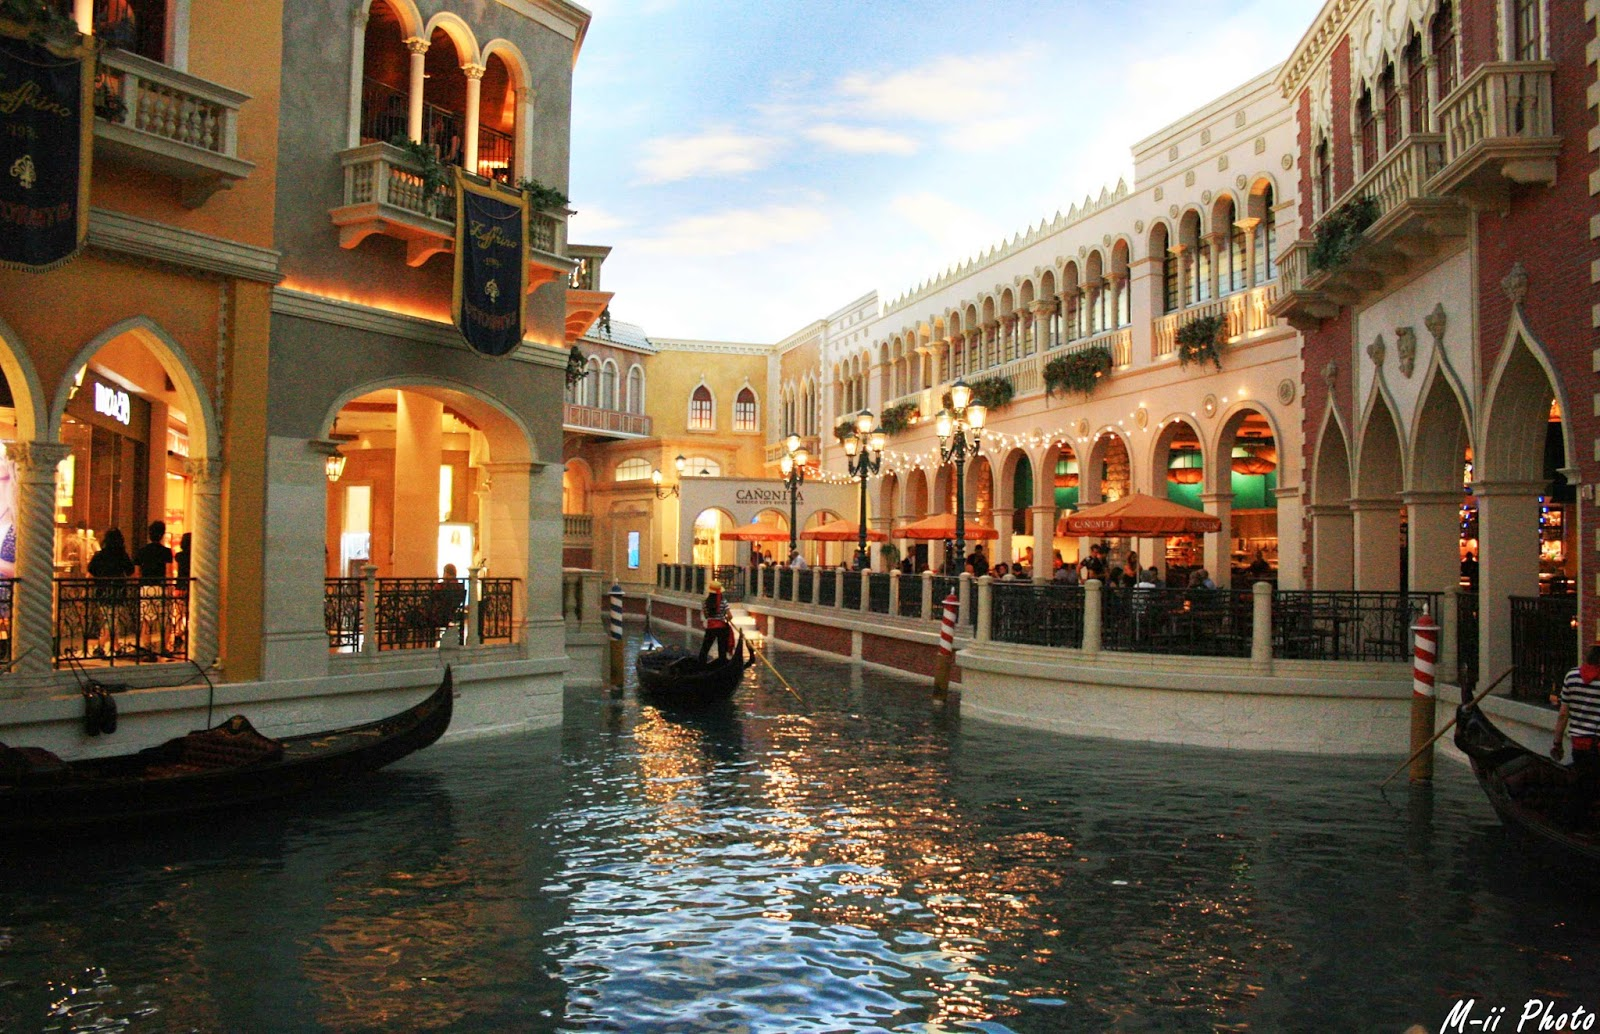 M-ii Photo : Las Vegas The Venetian